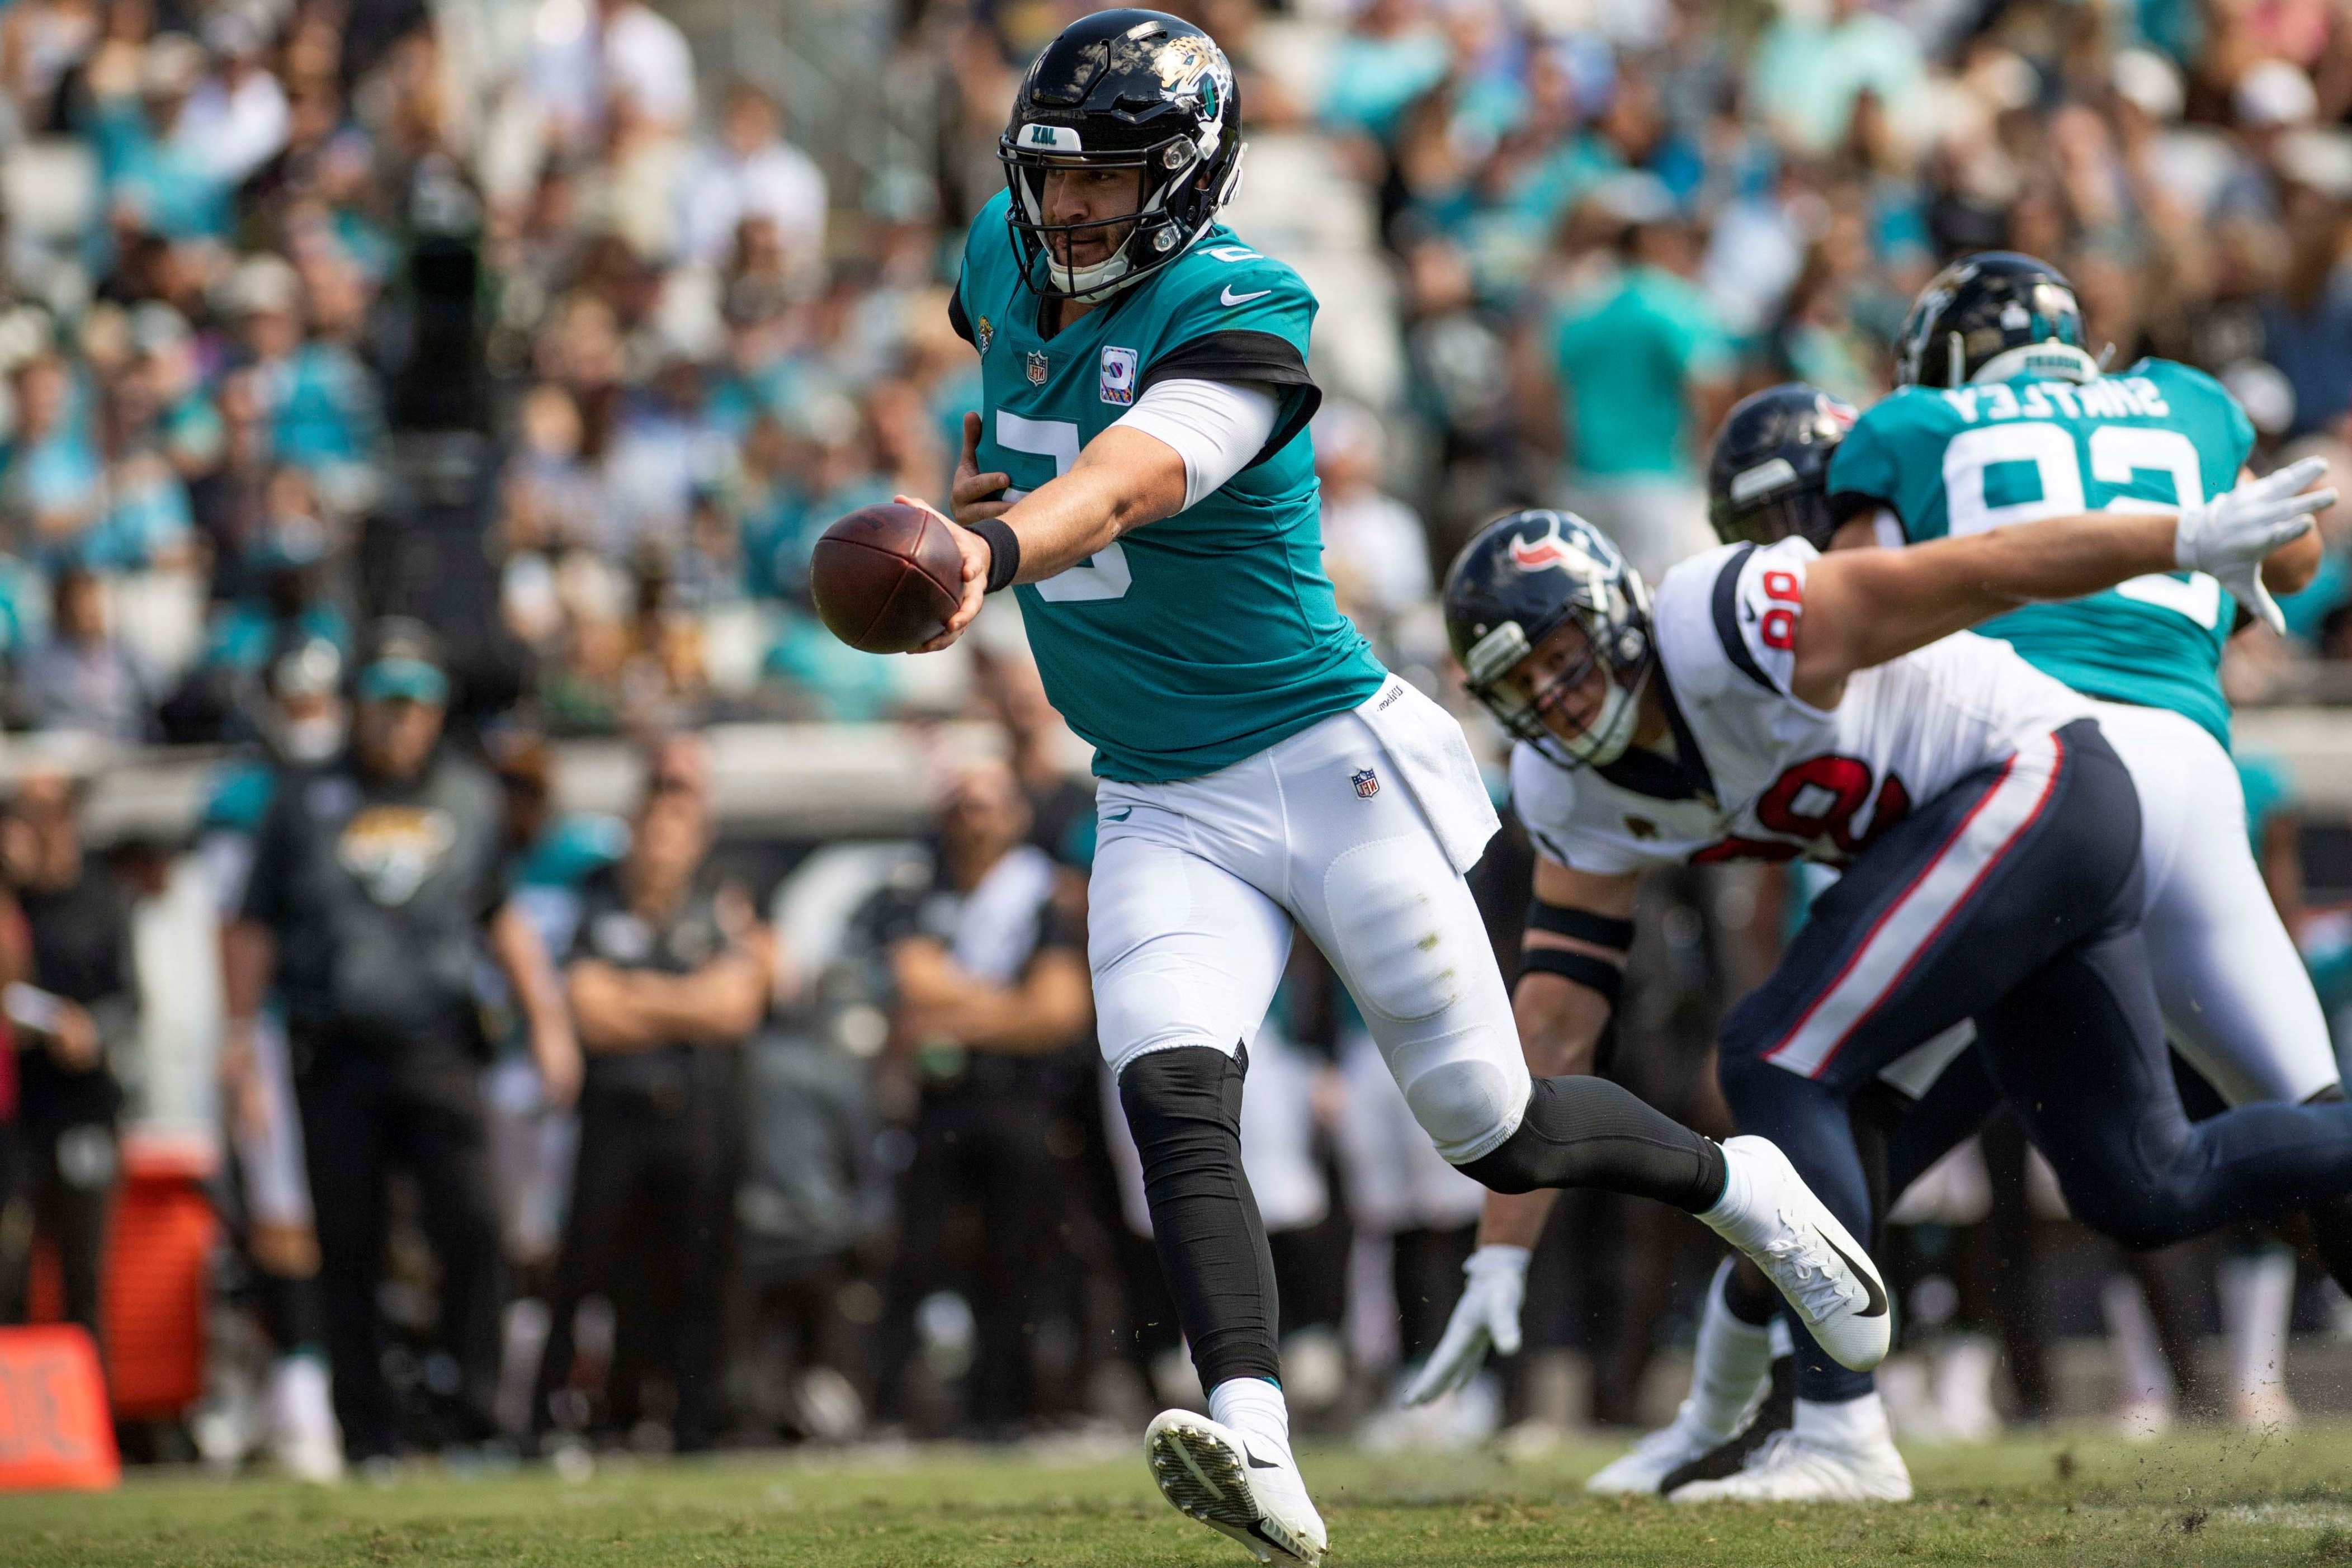 f4d6ed08 Offbeat: Blake Bortles benched by Jaguars after second fumble vs ...